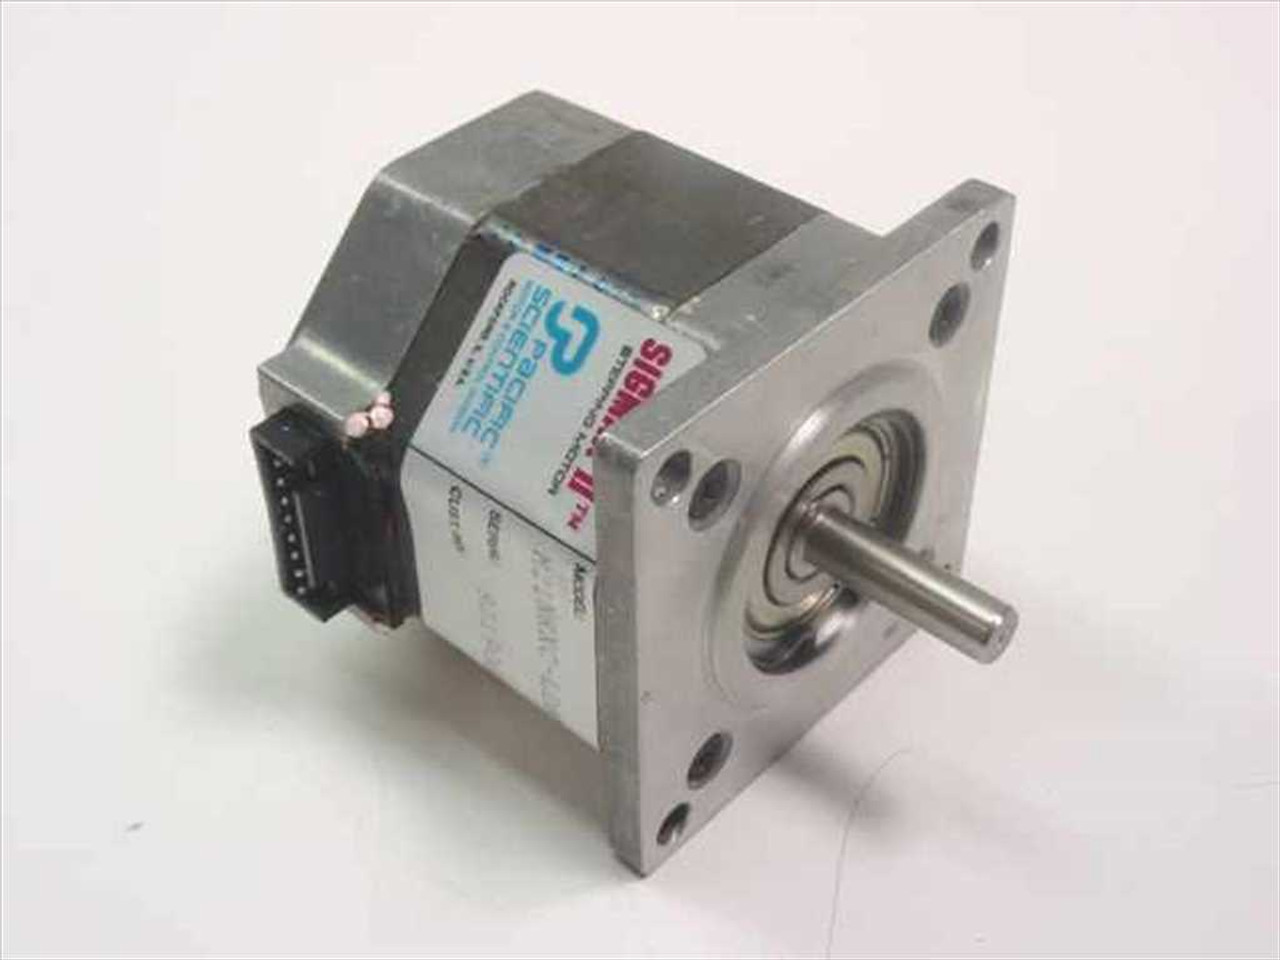 Pacific scientific motor control division m21nrxc ldn ns for Pacific scientific stepper motor